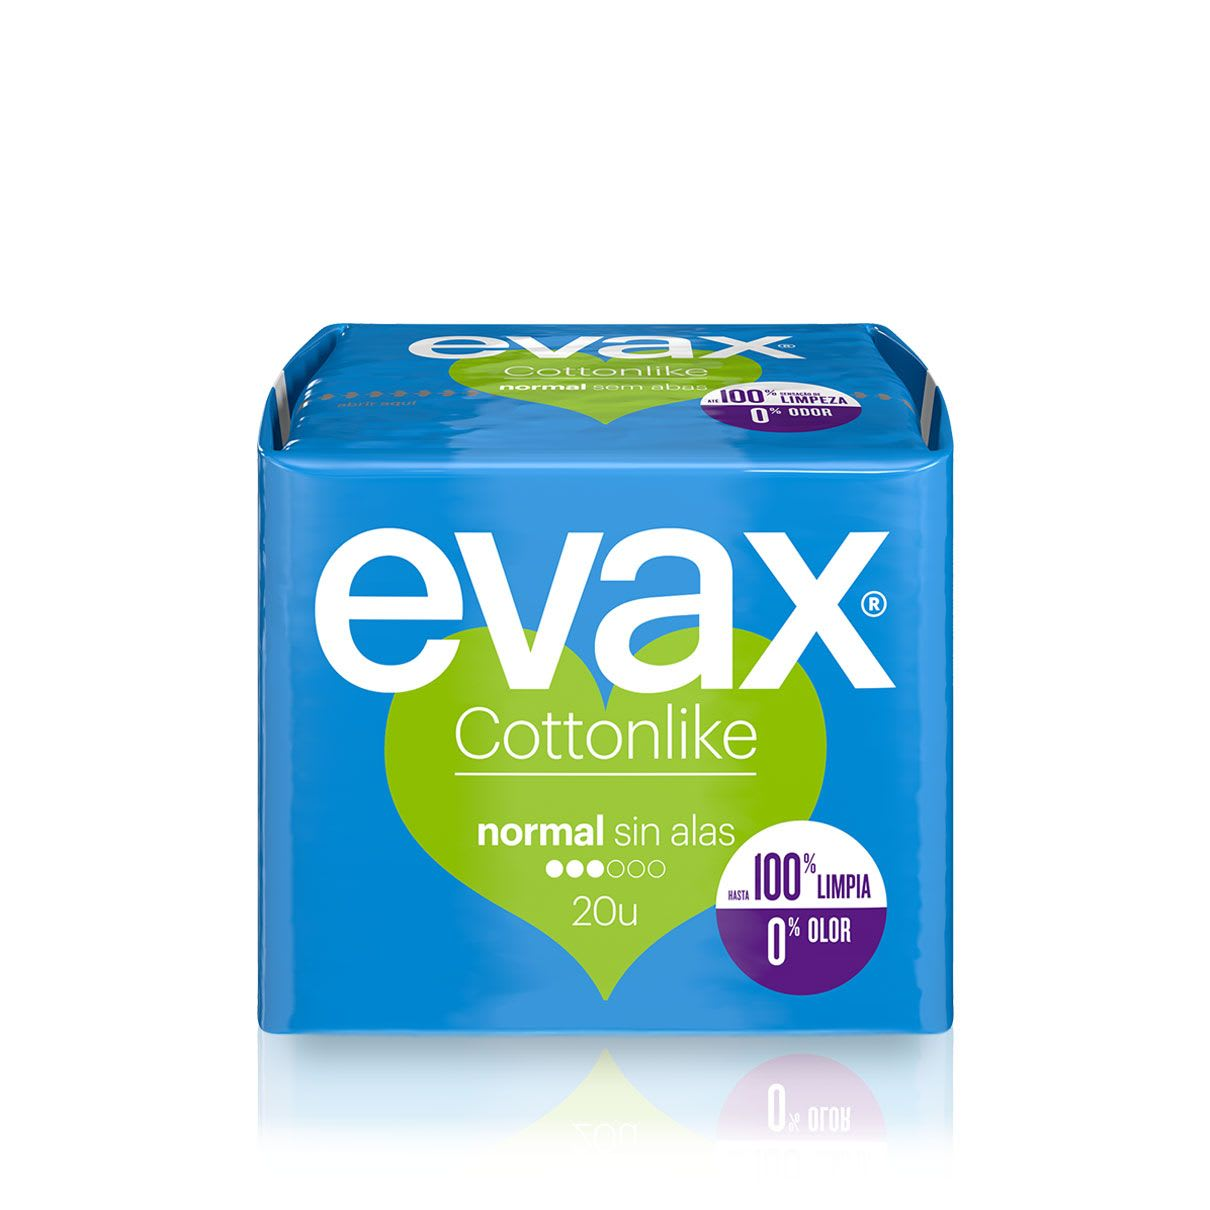 Evax Cottonlike sin Alas Normal